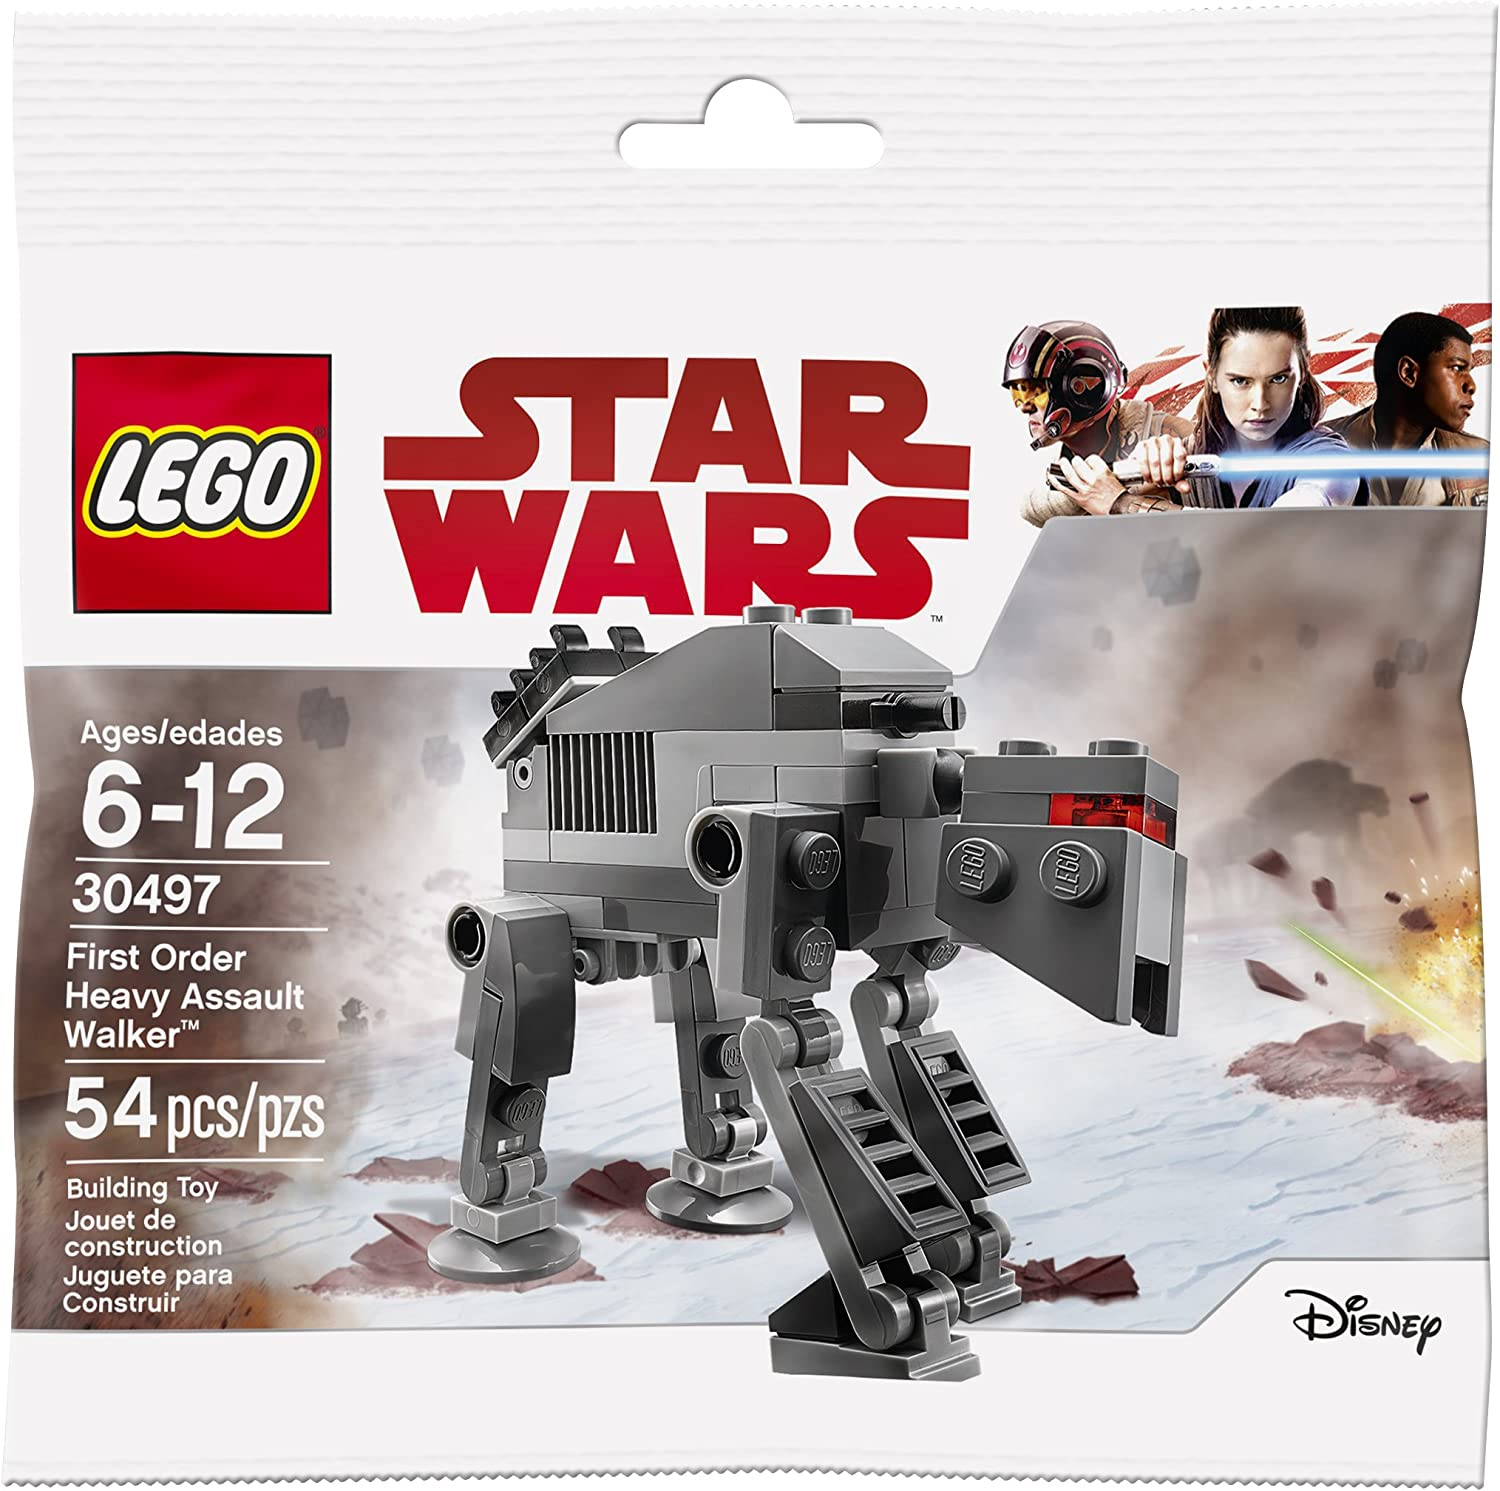 Lego Star Wars: The Last Jedi First Order Heavy Assault Walker (30497) Bagged